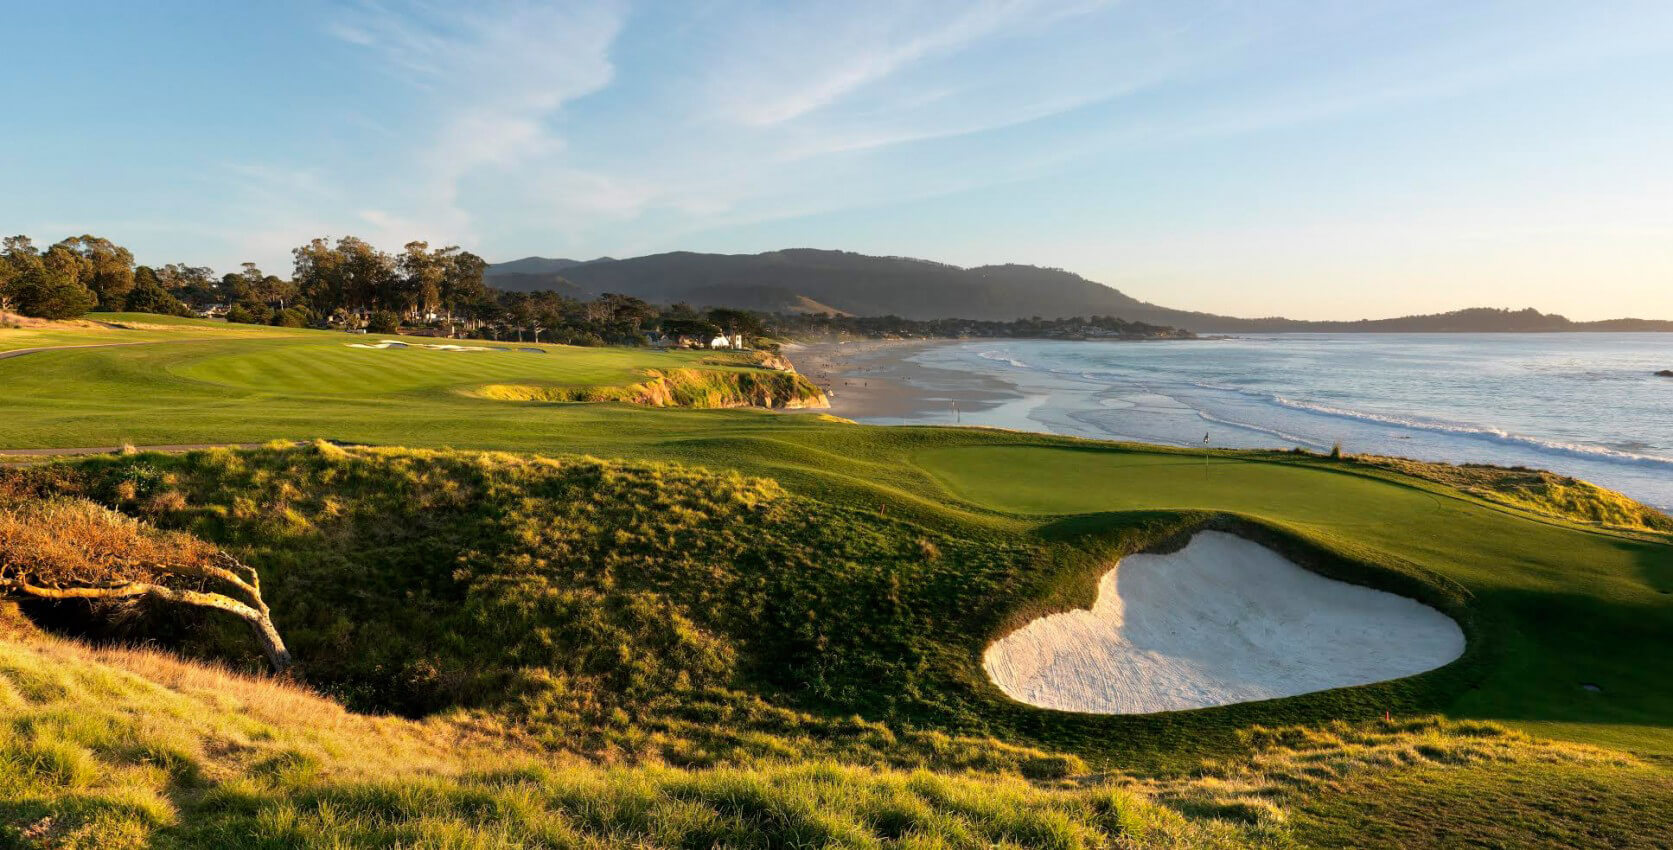 Pebble Beach by the ocean